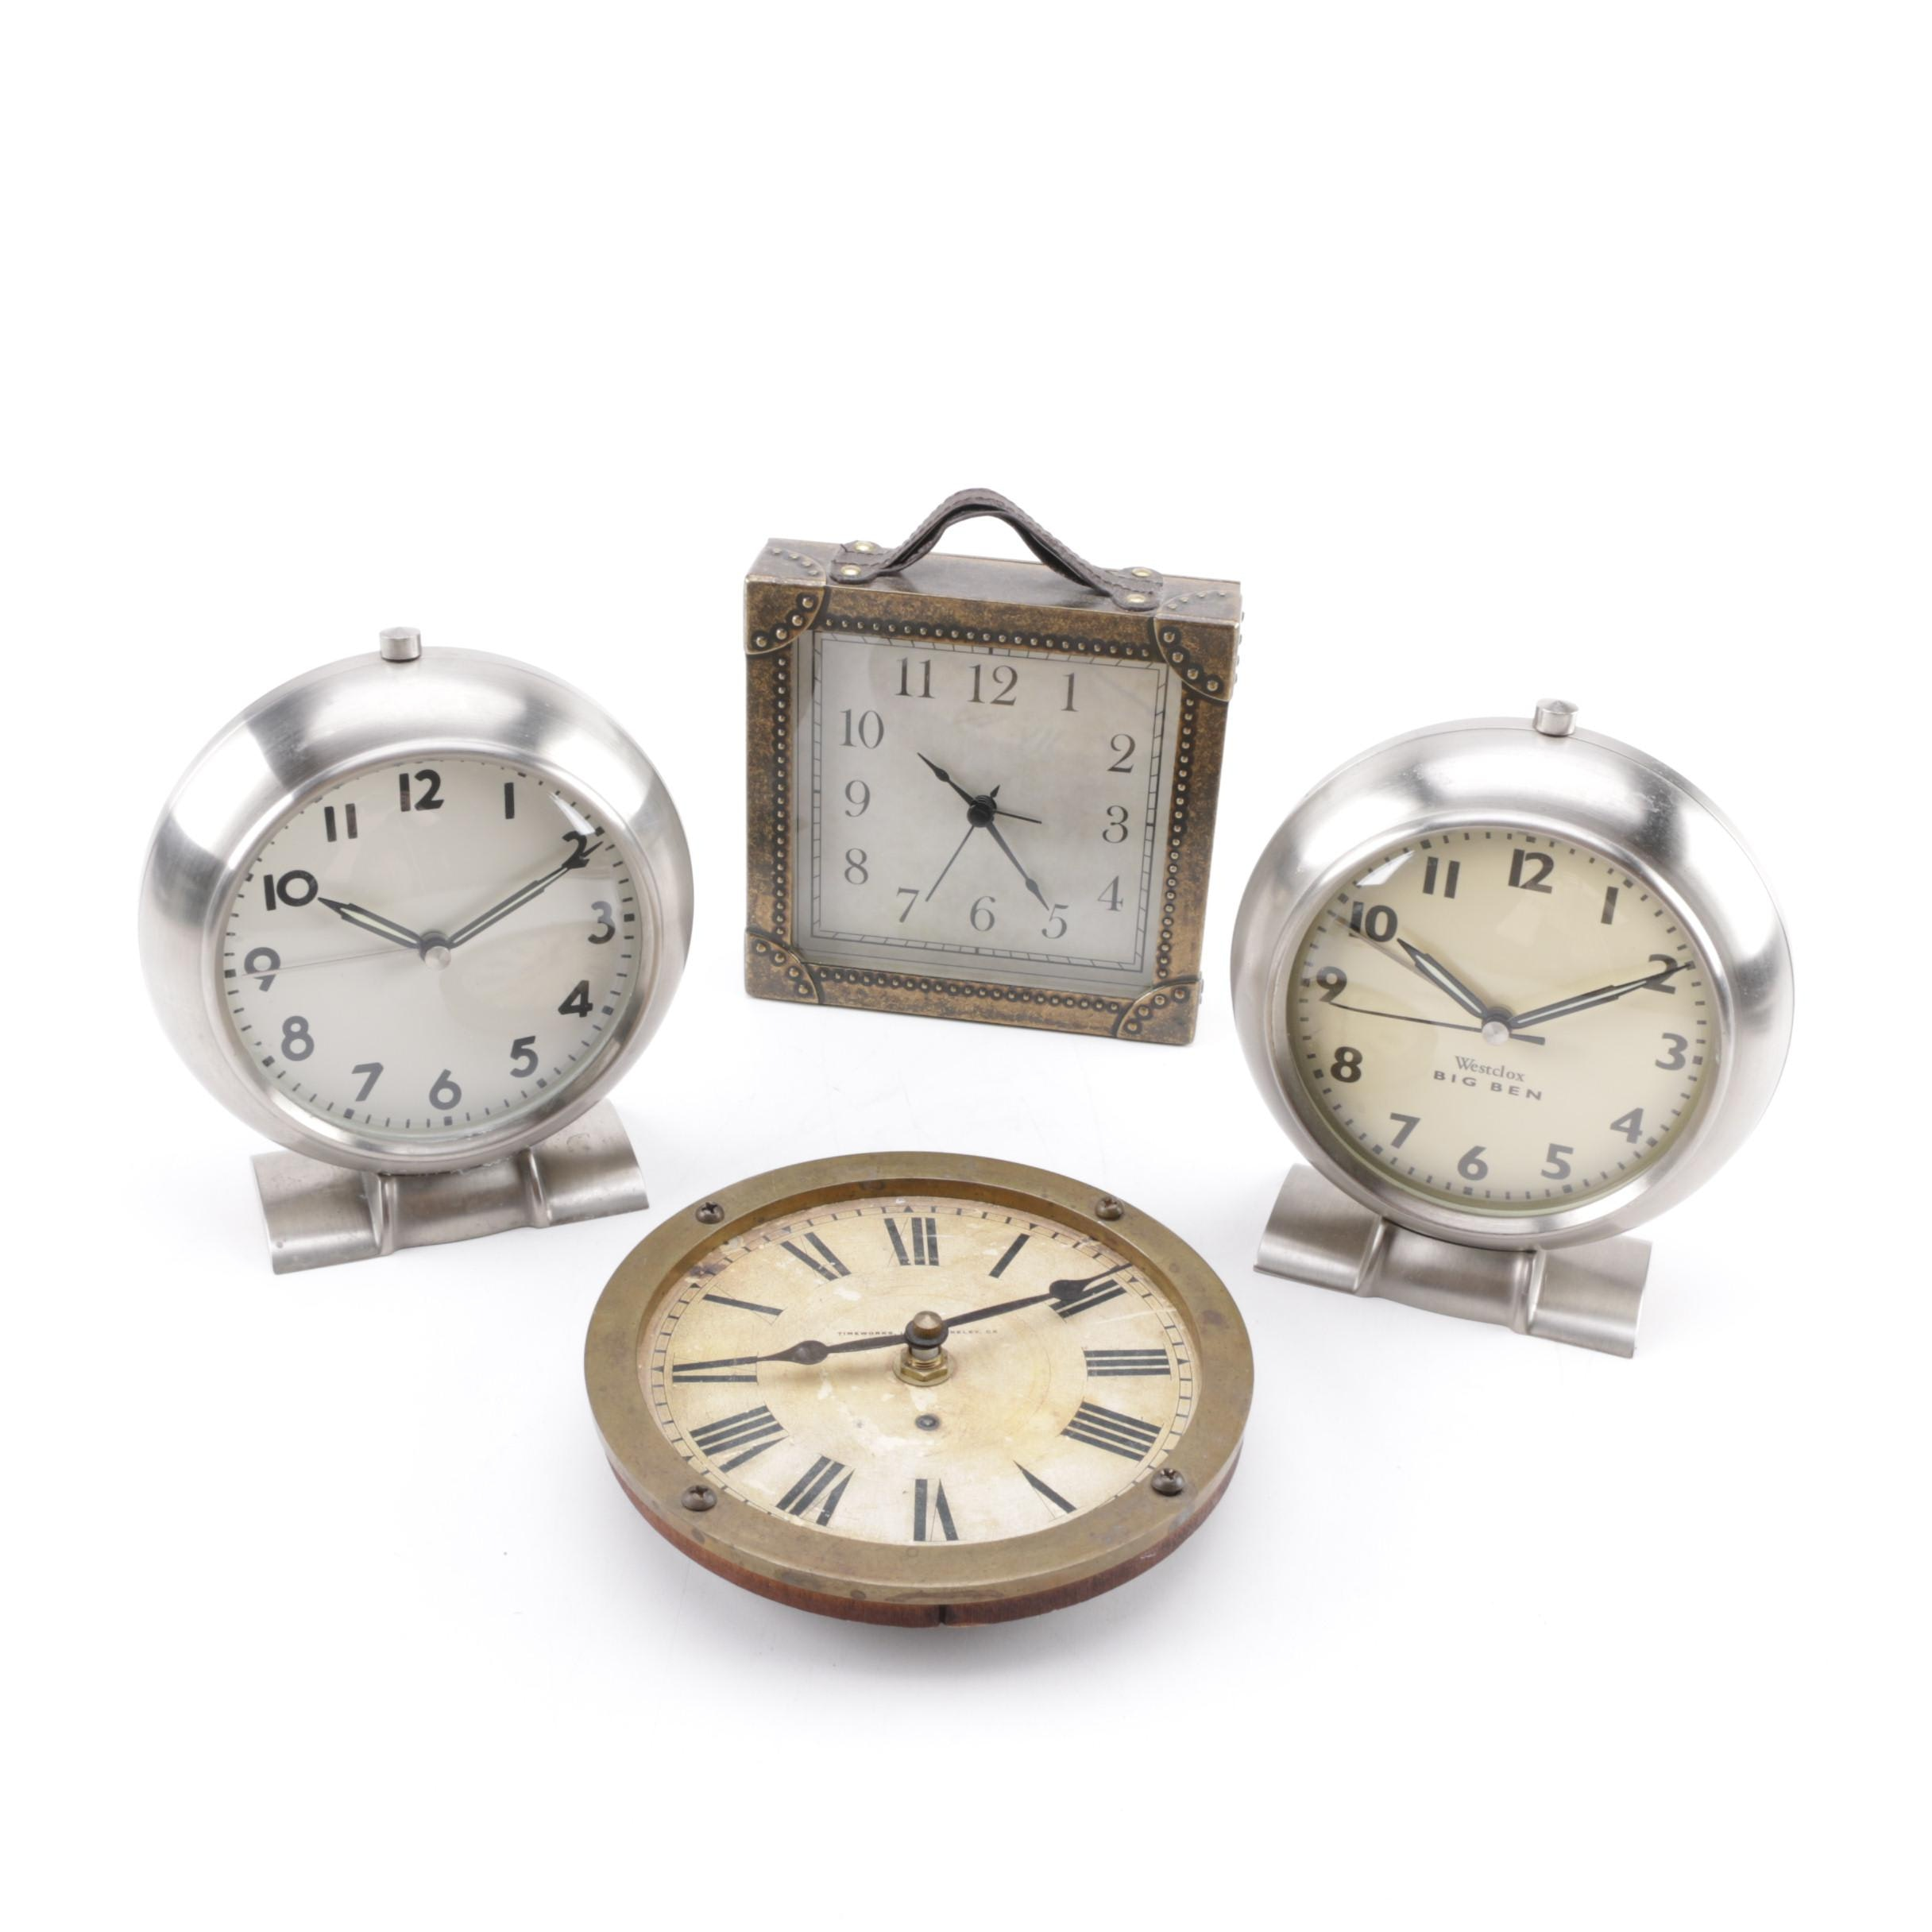 Assorted Wall and Shelf Clocks Featuring Timeworks